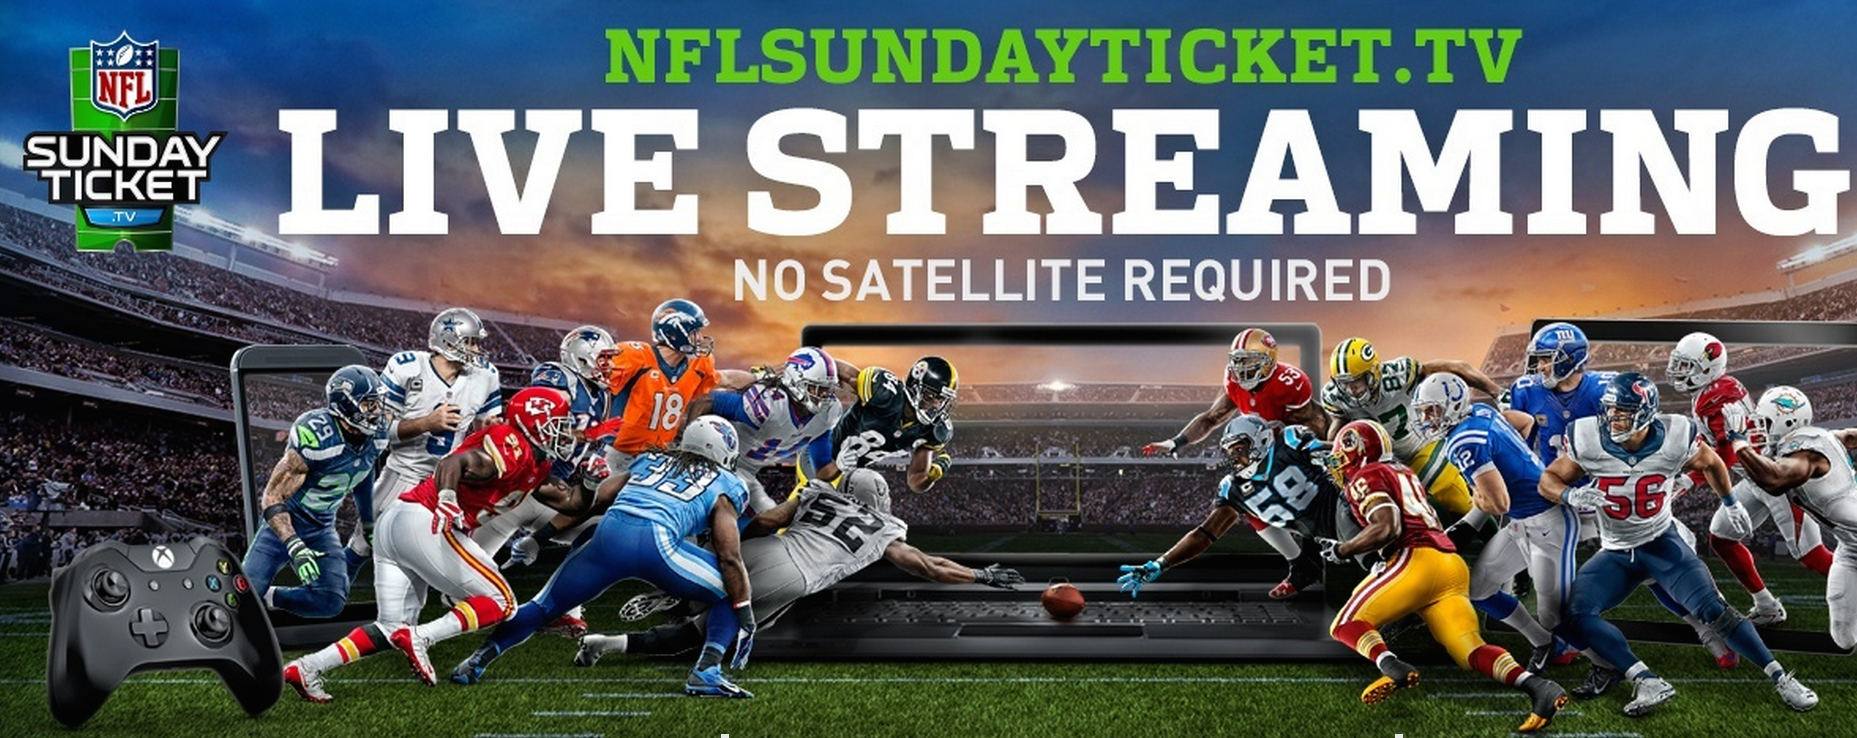 Get The NFL Sunday Ticket for Only $80 with Student Discount and this DirecTV Coupon Code.